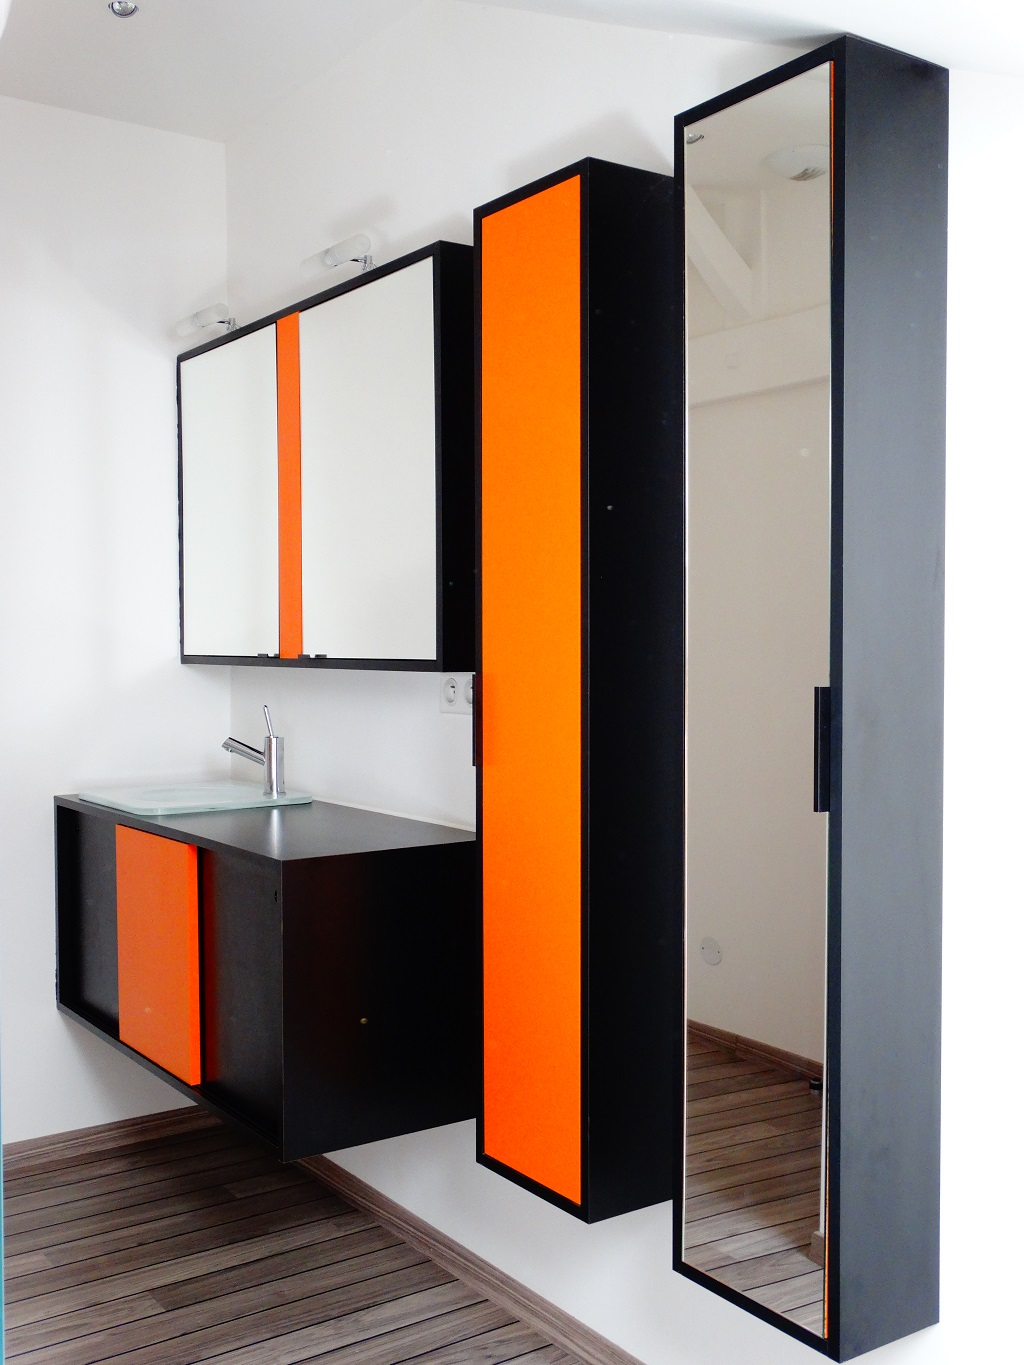 salle de bain orange et bois maison design. Black Bedroom Furniture Sets. Home Design Ideas